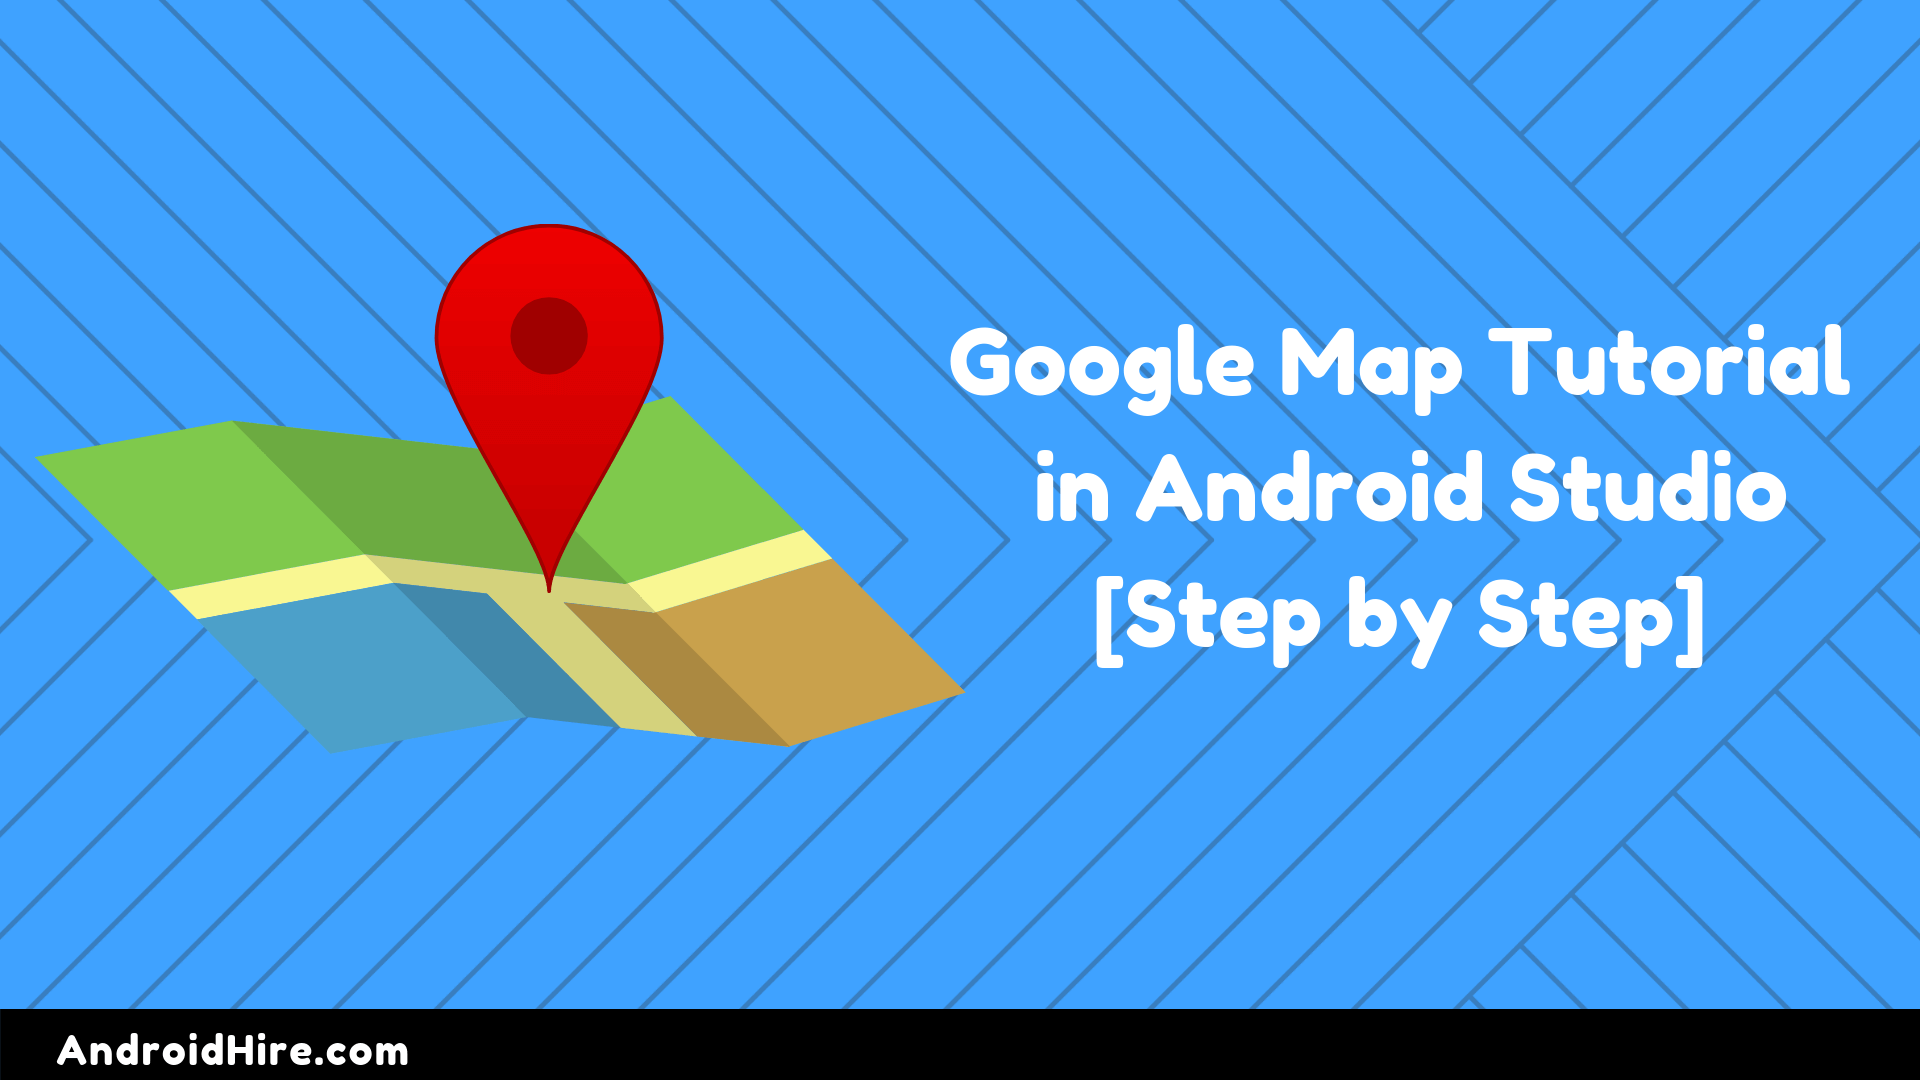 Google Map Tutorial In Android Studio [Step By Step] - Android Hire